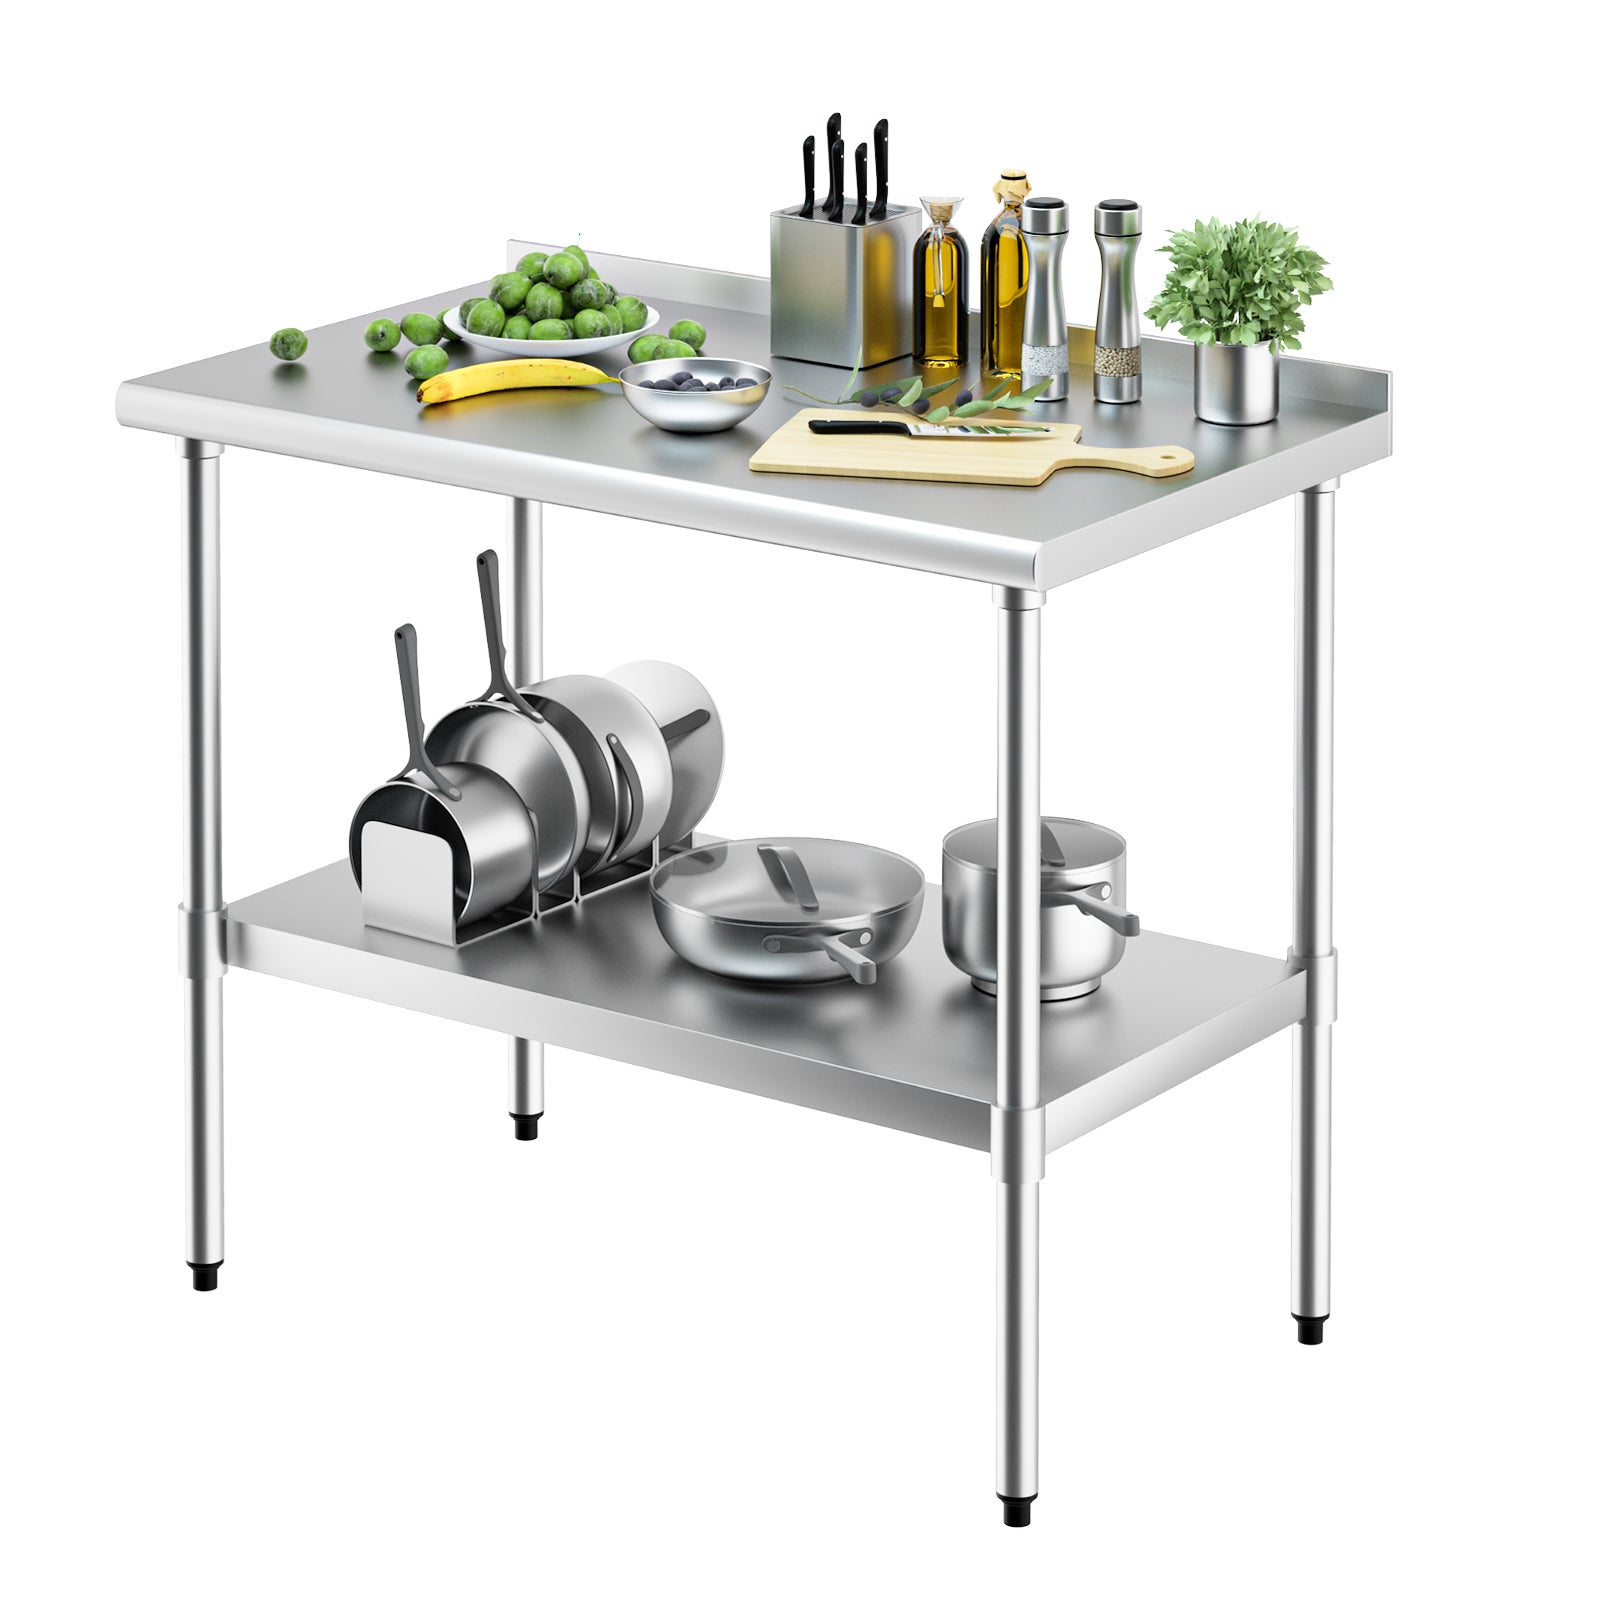 Advwin 1524x610 Stainless Steel Commercial Kitchen Bench Prep Table